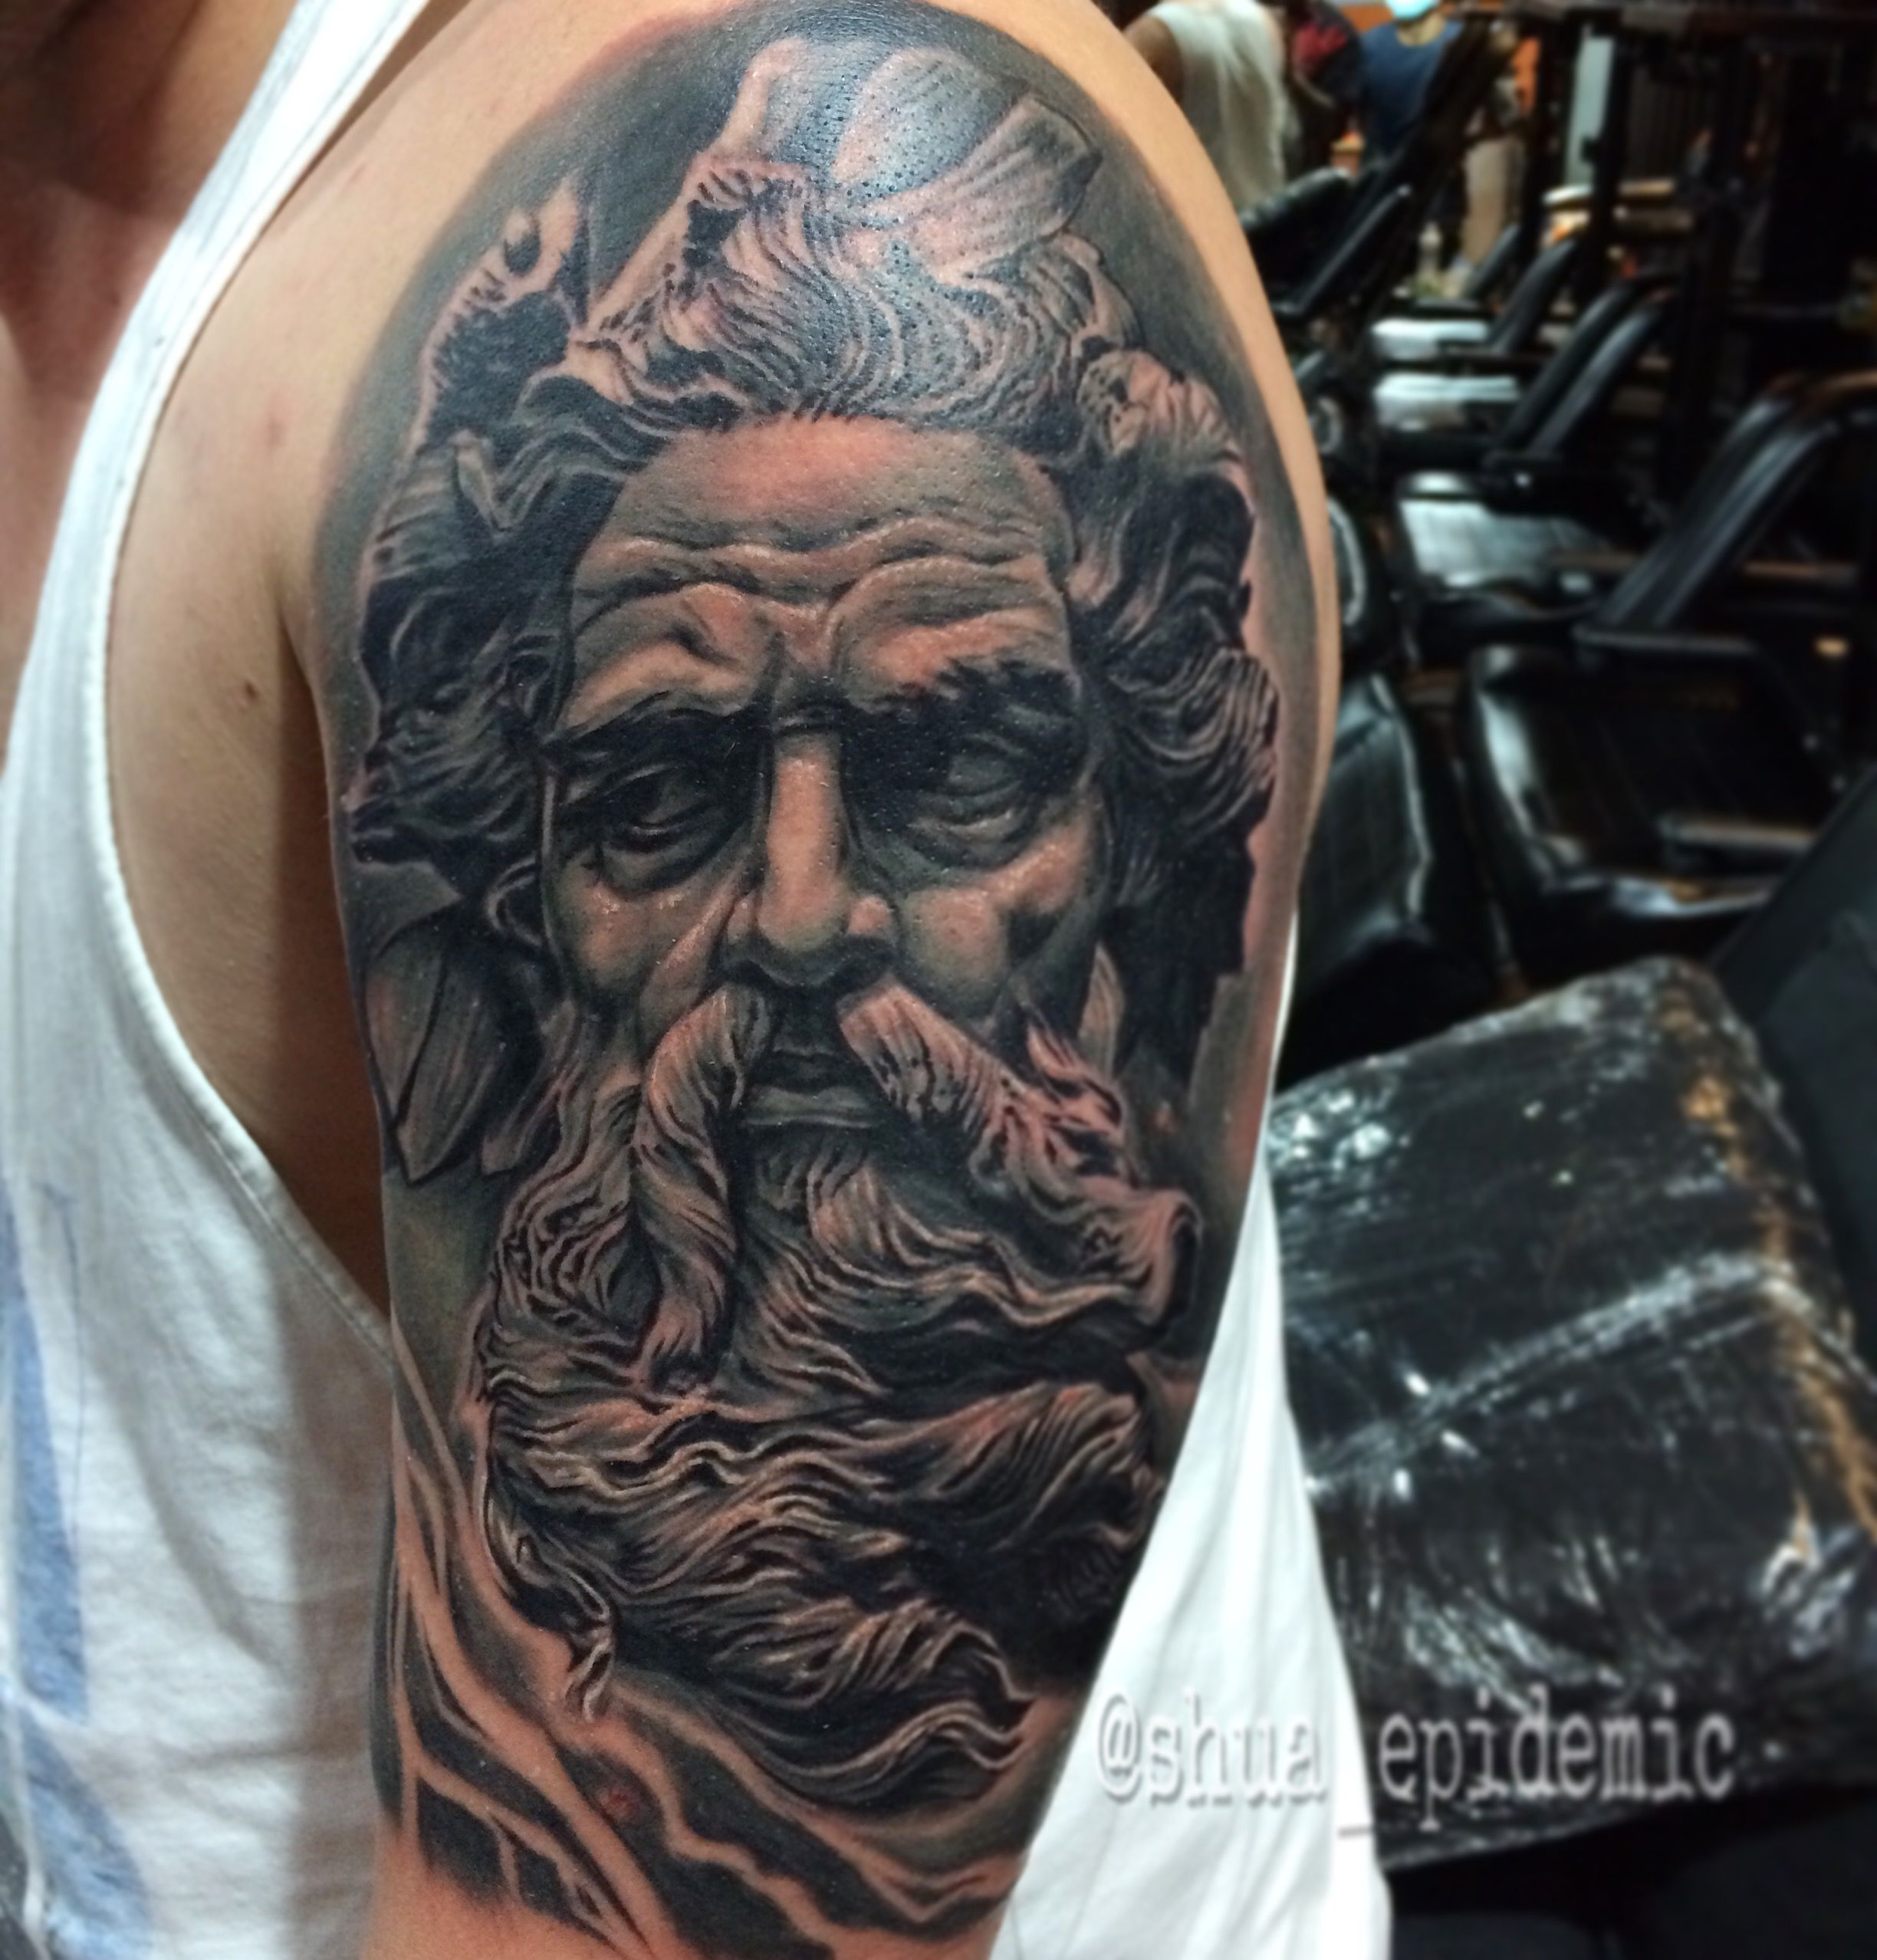 Zeus Tattoo By Shua Epidemic